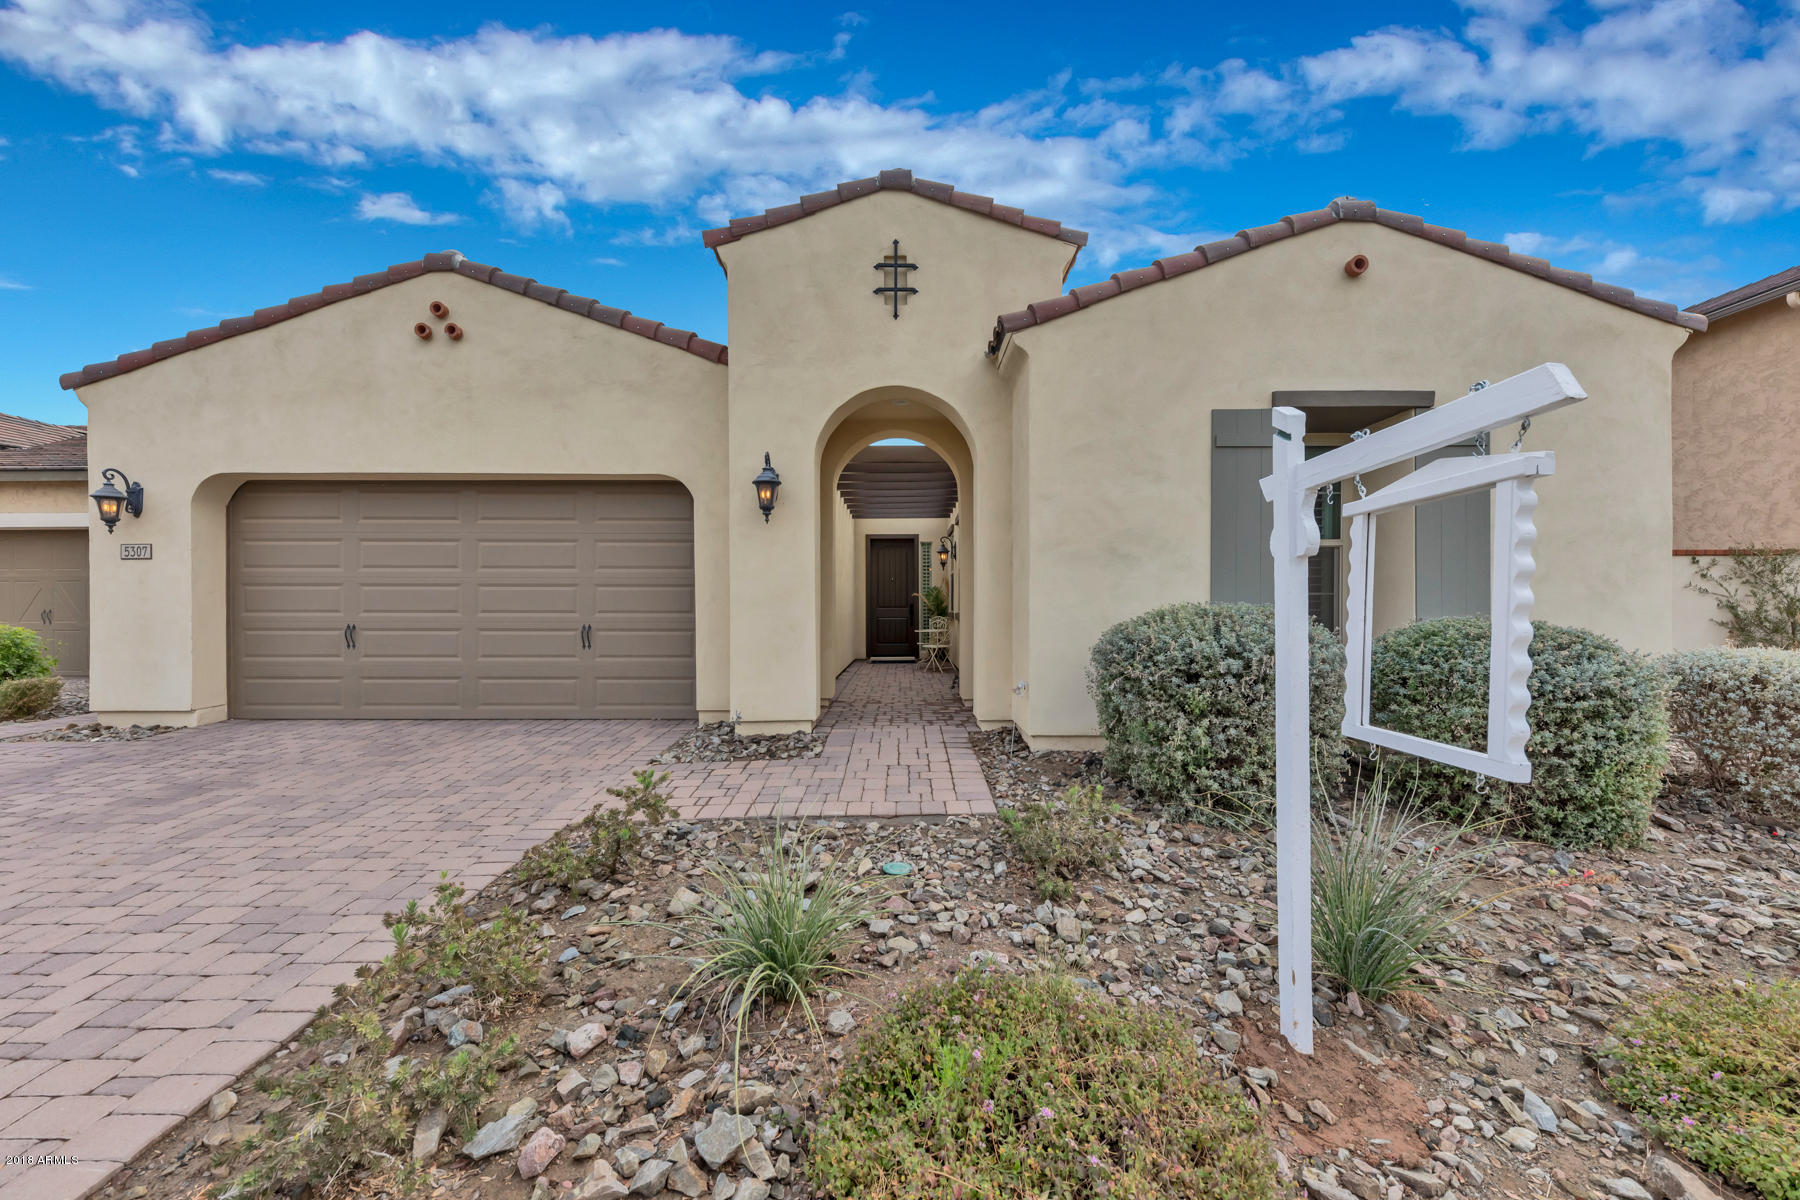 Eastmark homes for sale - The Phoenix Real Estate Guy